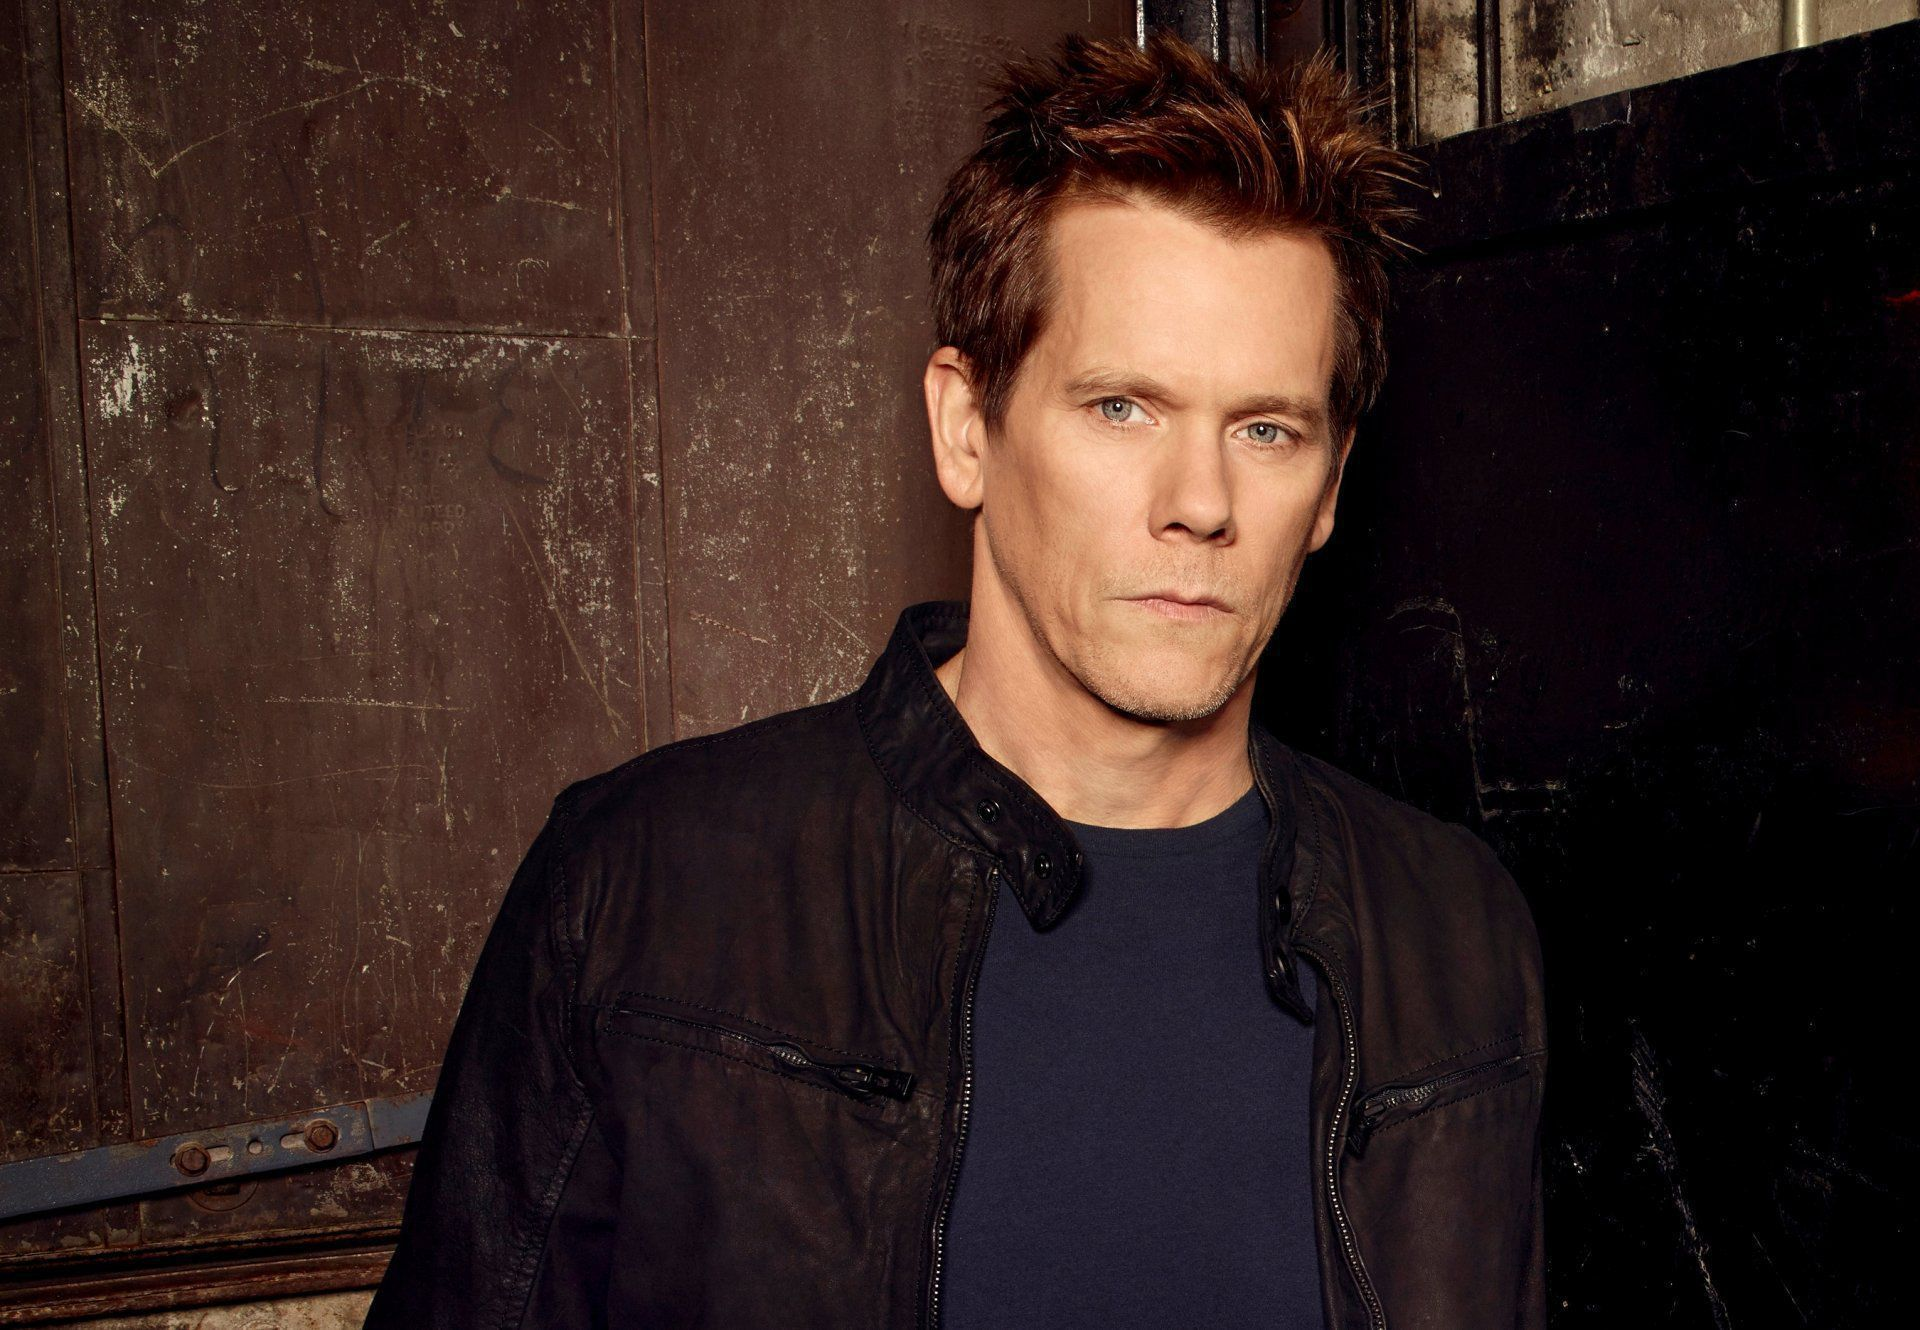 1920x1330 - Kevin Bacon Wallpapers 6